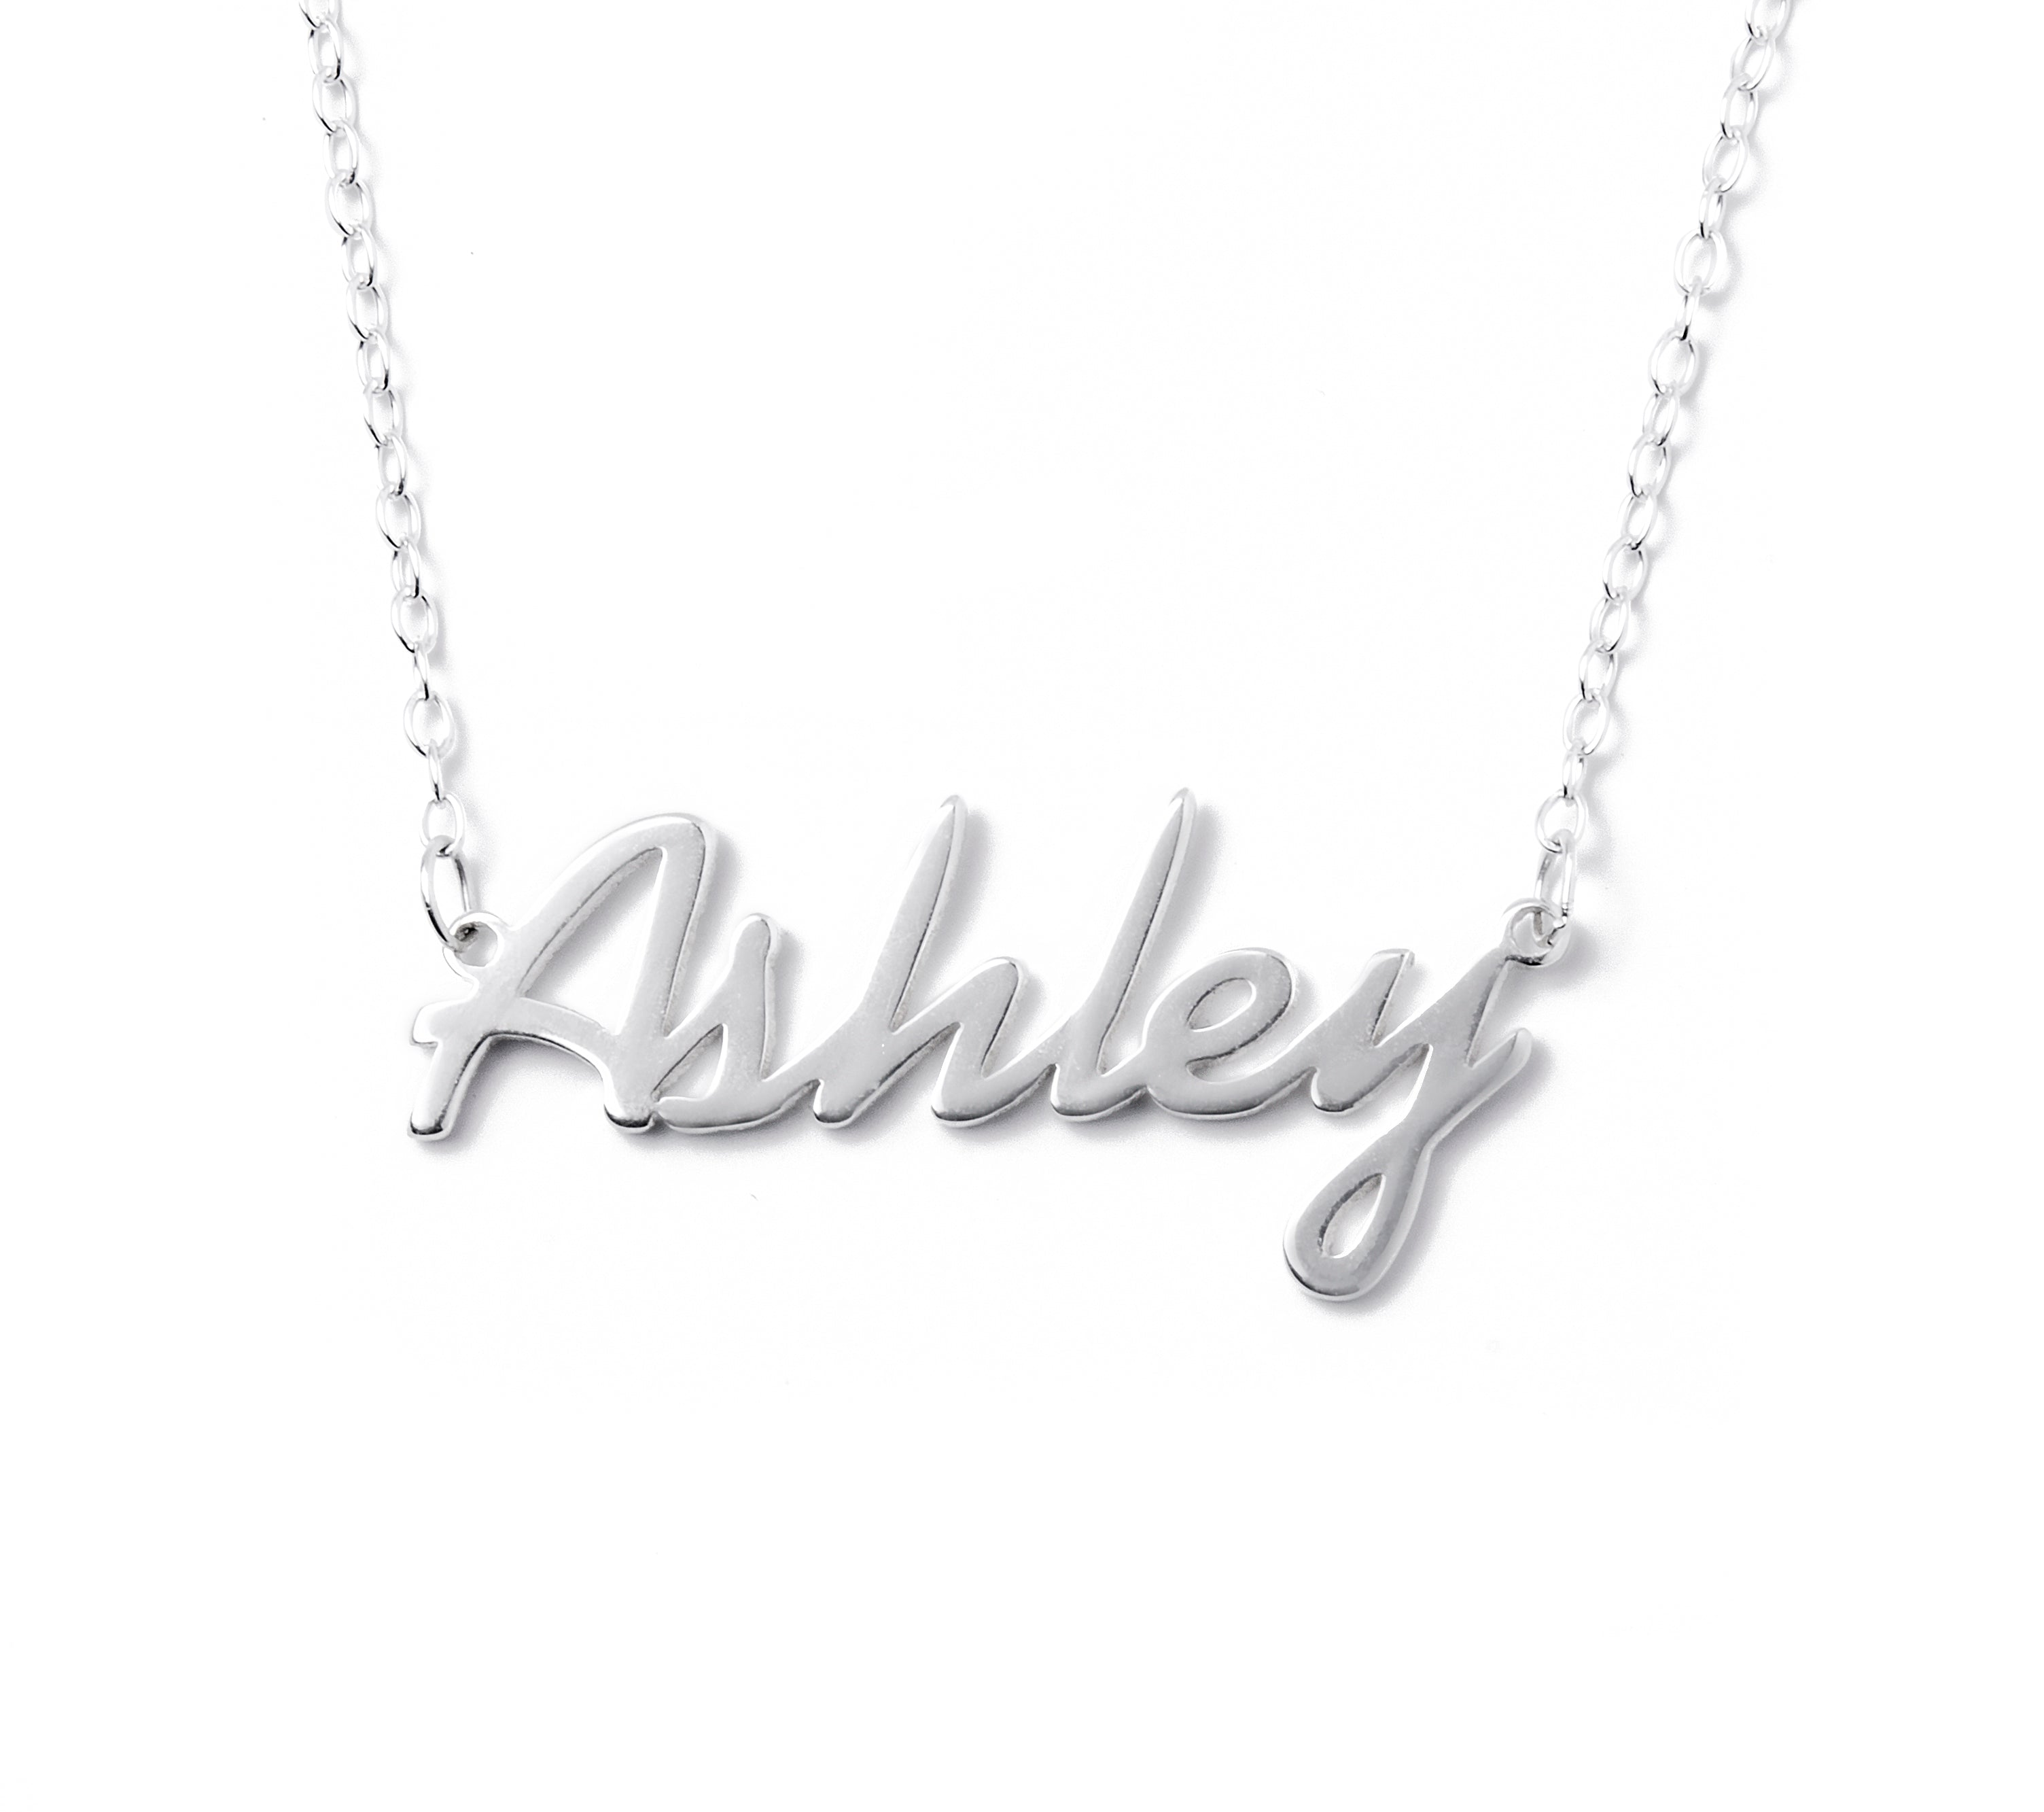 acrylic jewellery creatives name black font hellvetica necklace line single heart cut product laser